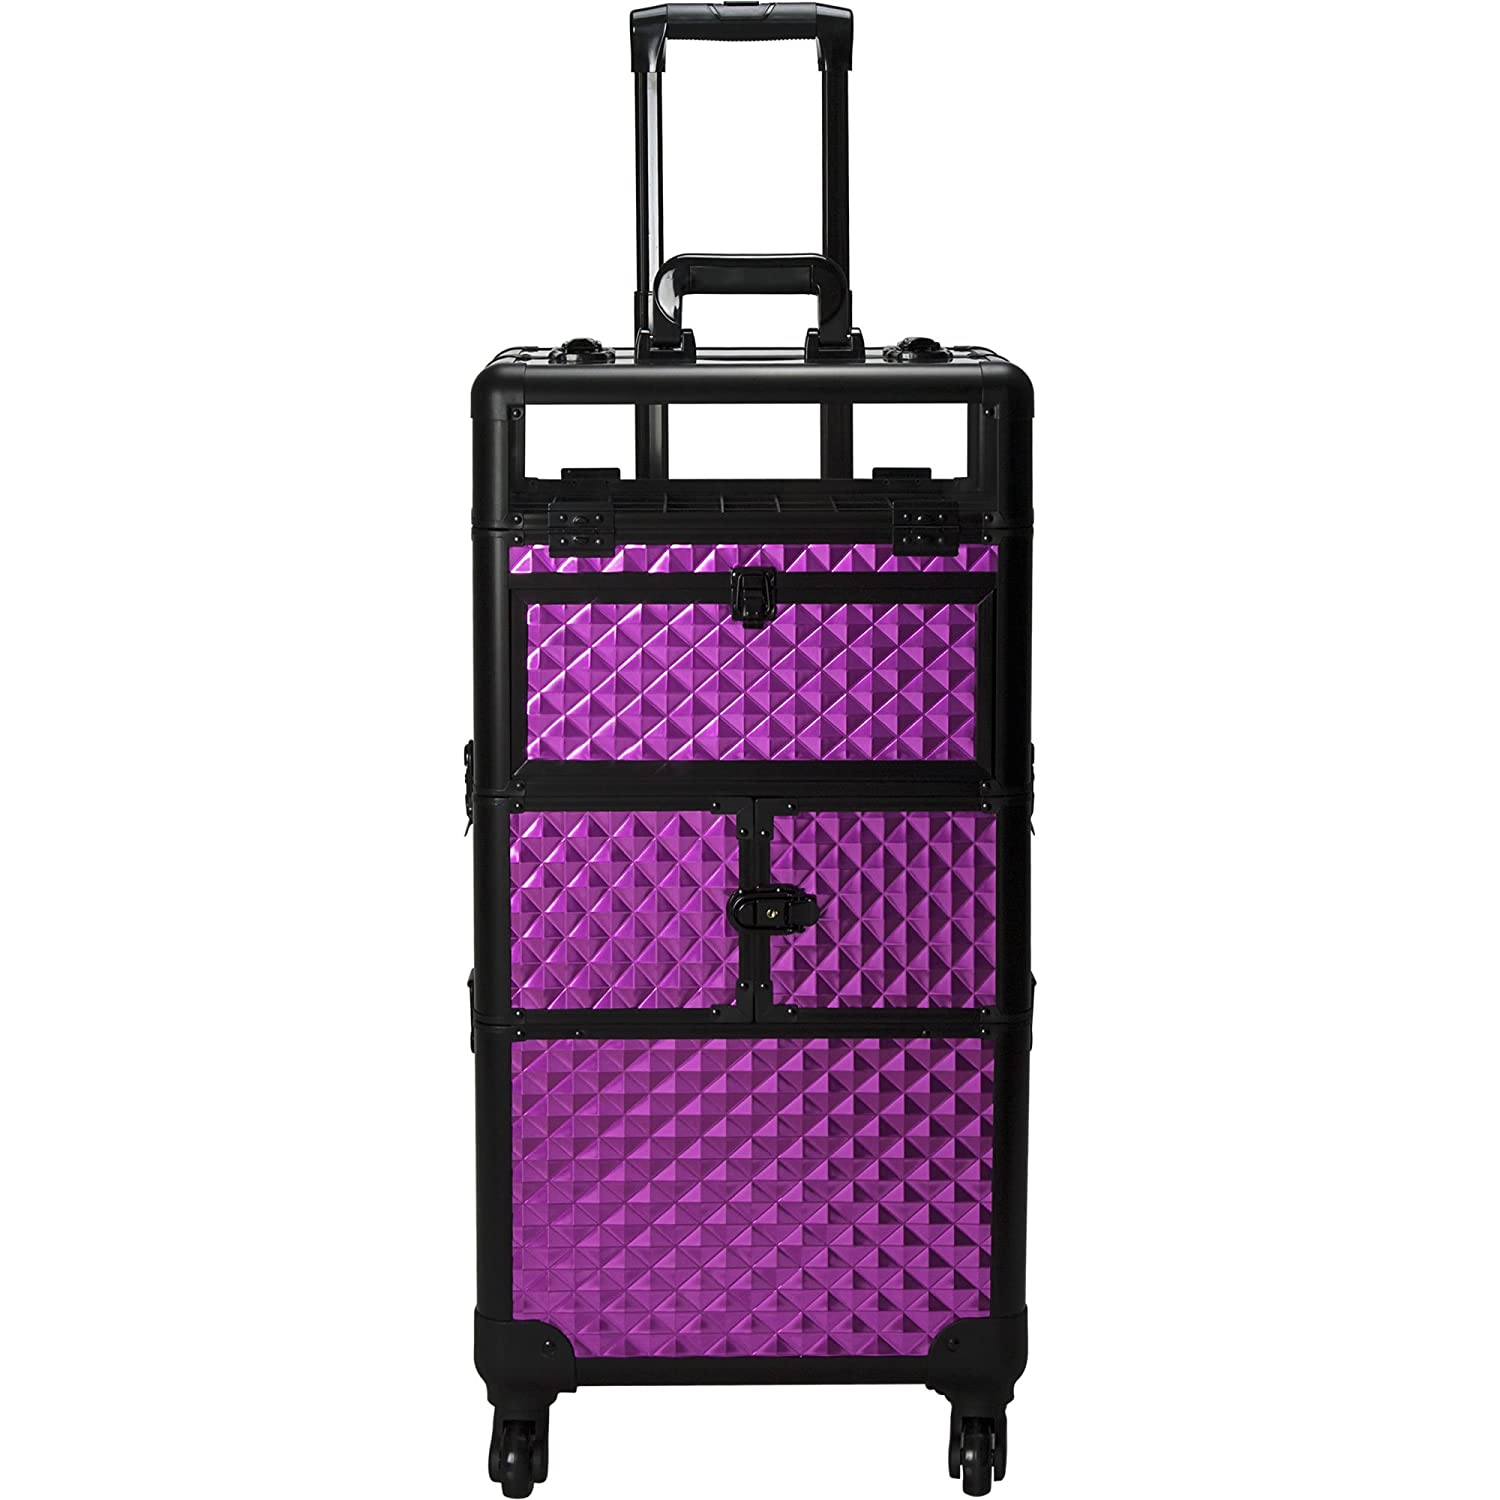 Sunrise I31064 Pro 4 Wheels 2 in 1 Rolling Makeup Cosmetic Nail Case Organizer with 54 Bottles 6 Trays, Diamond Purple I31064DMPLB